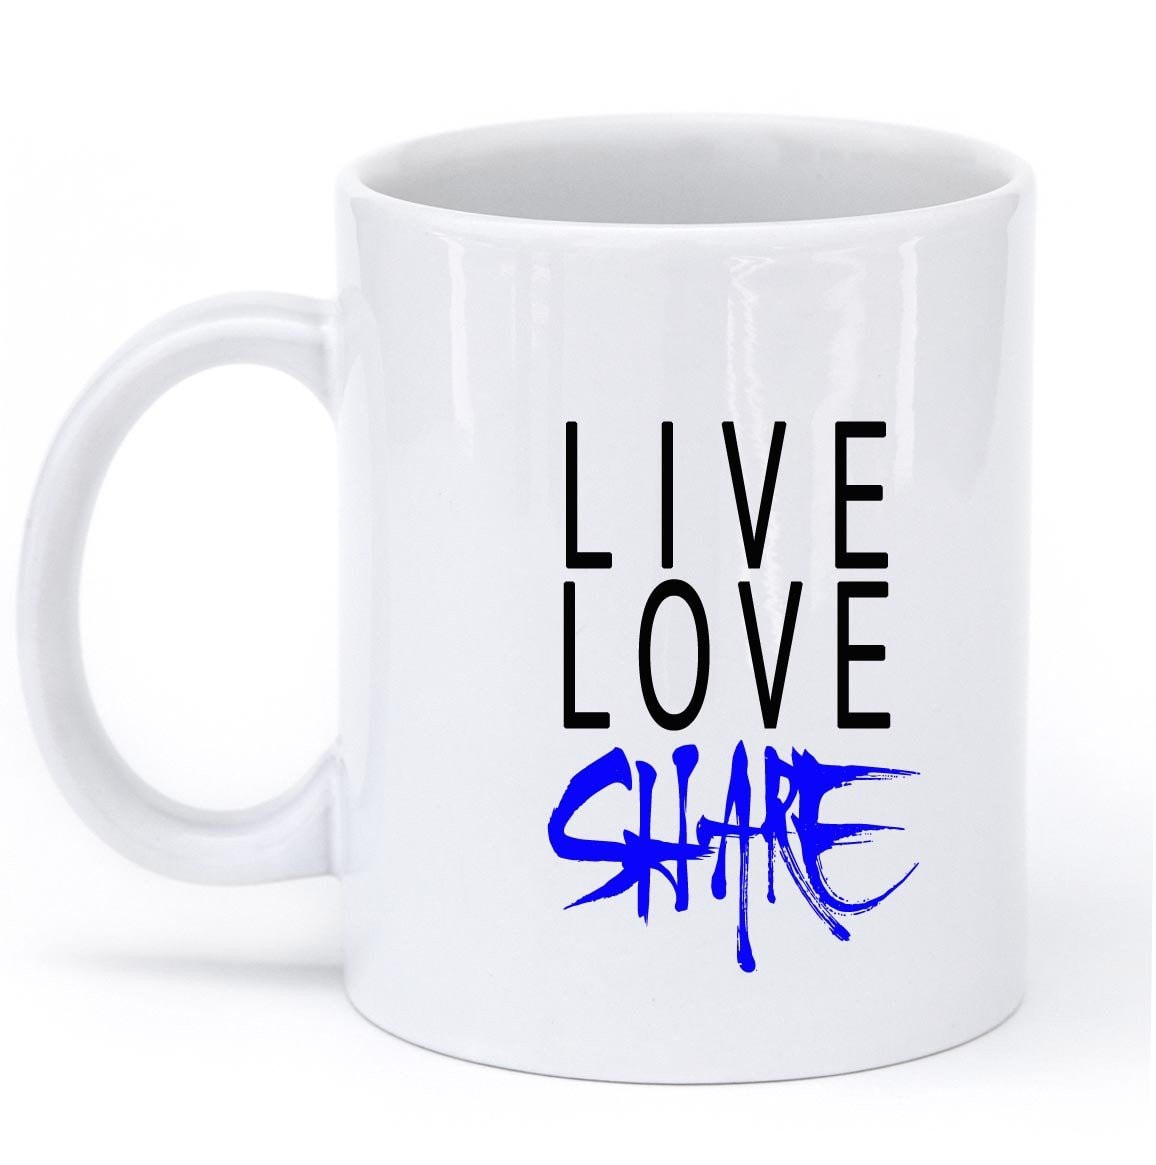 liveloveshare mug - Shirtoopia